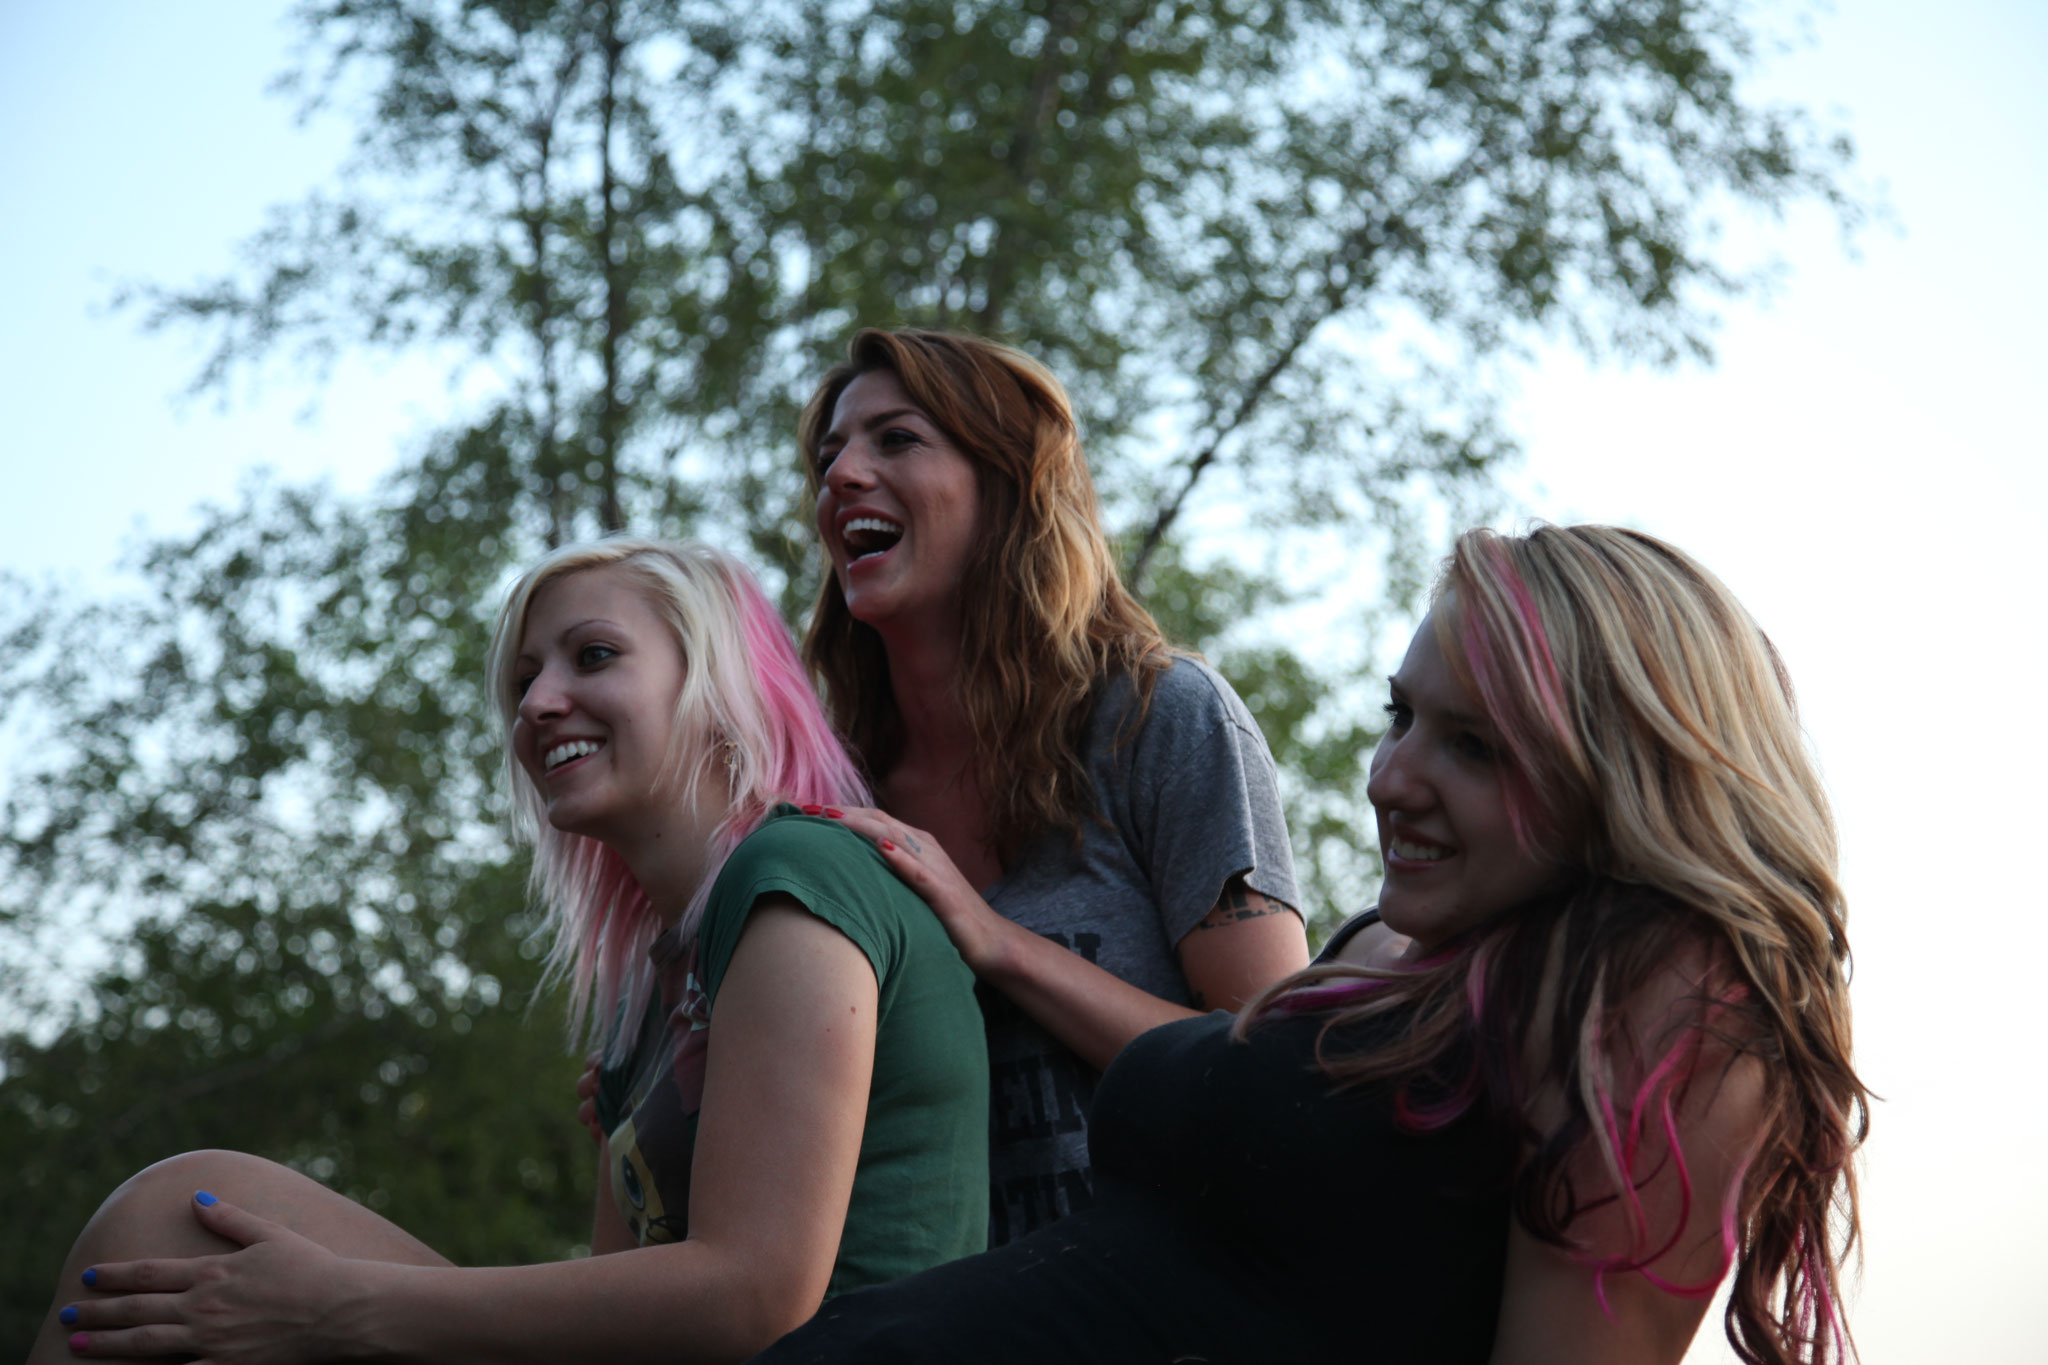 Some of the lovely ladies of the High on the Hog crew.  L/R: Liz Salvato, Courtney Shattuck, Sarah Sharp.